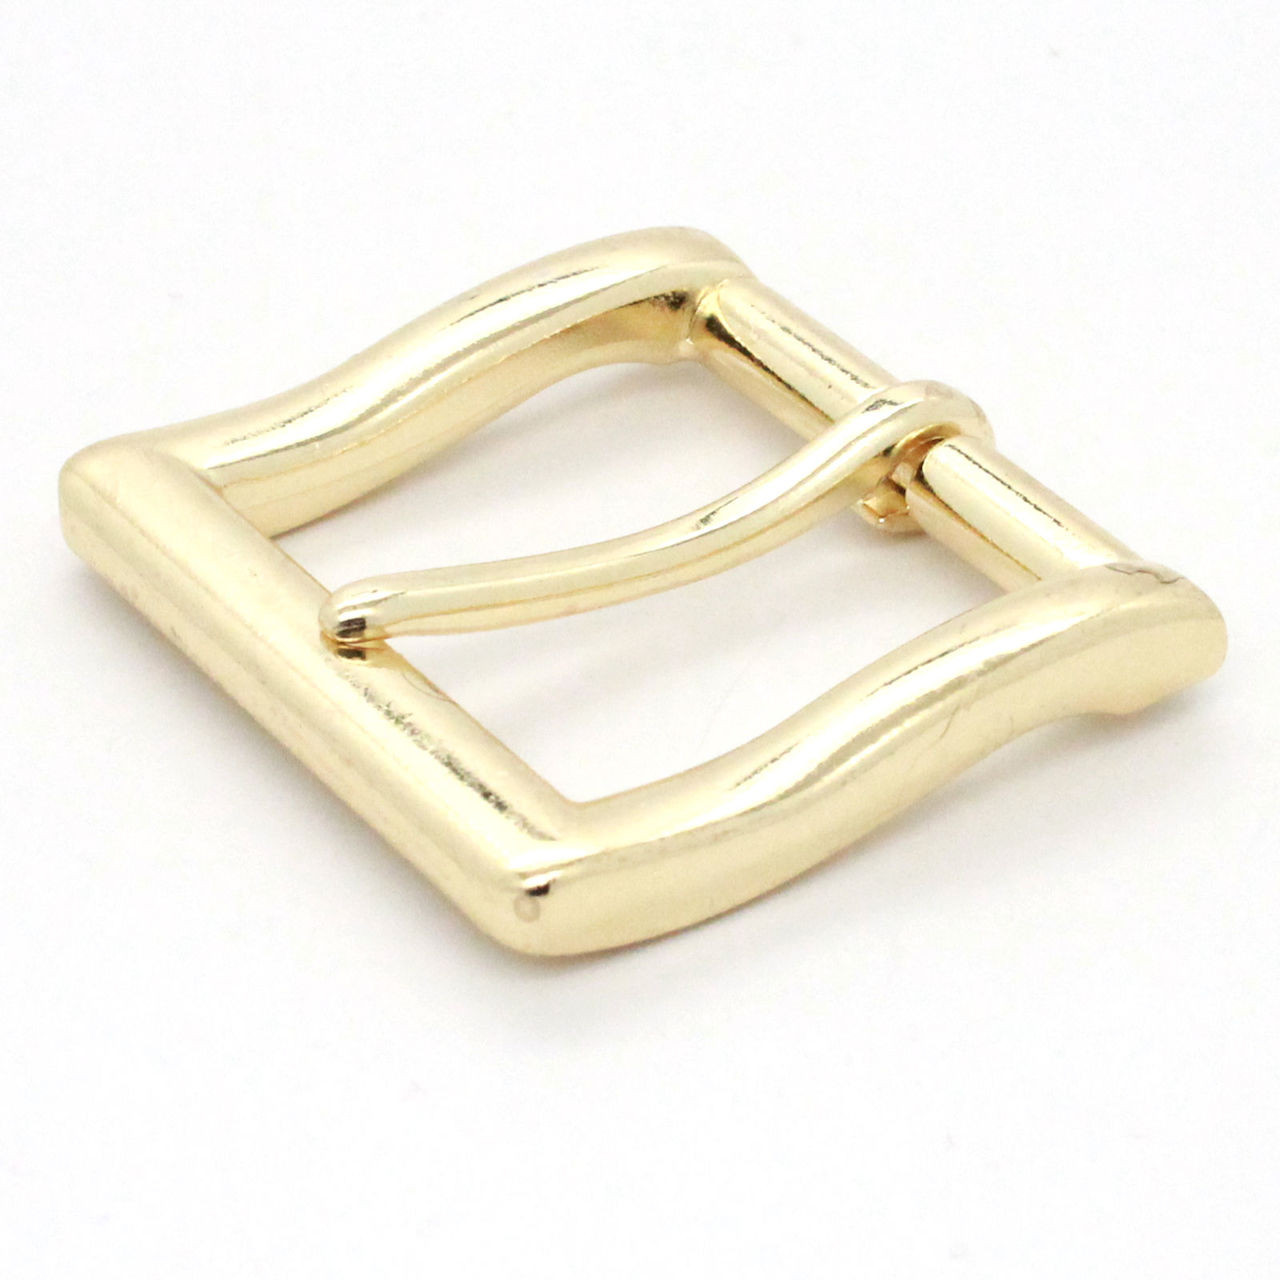 Square heel bar 1.5 inch brass plate front